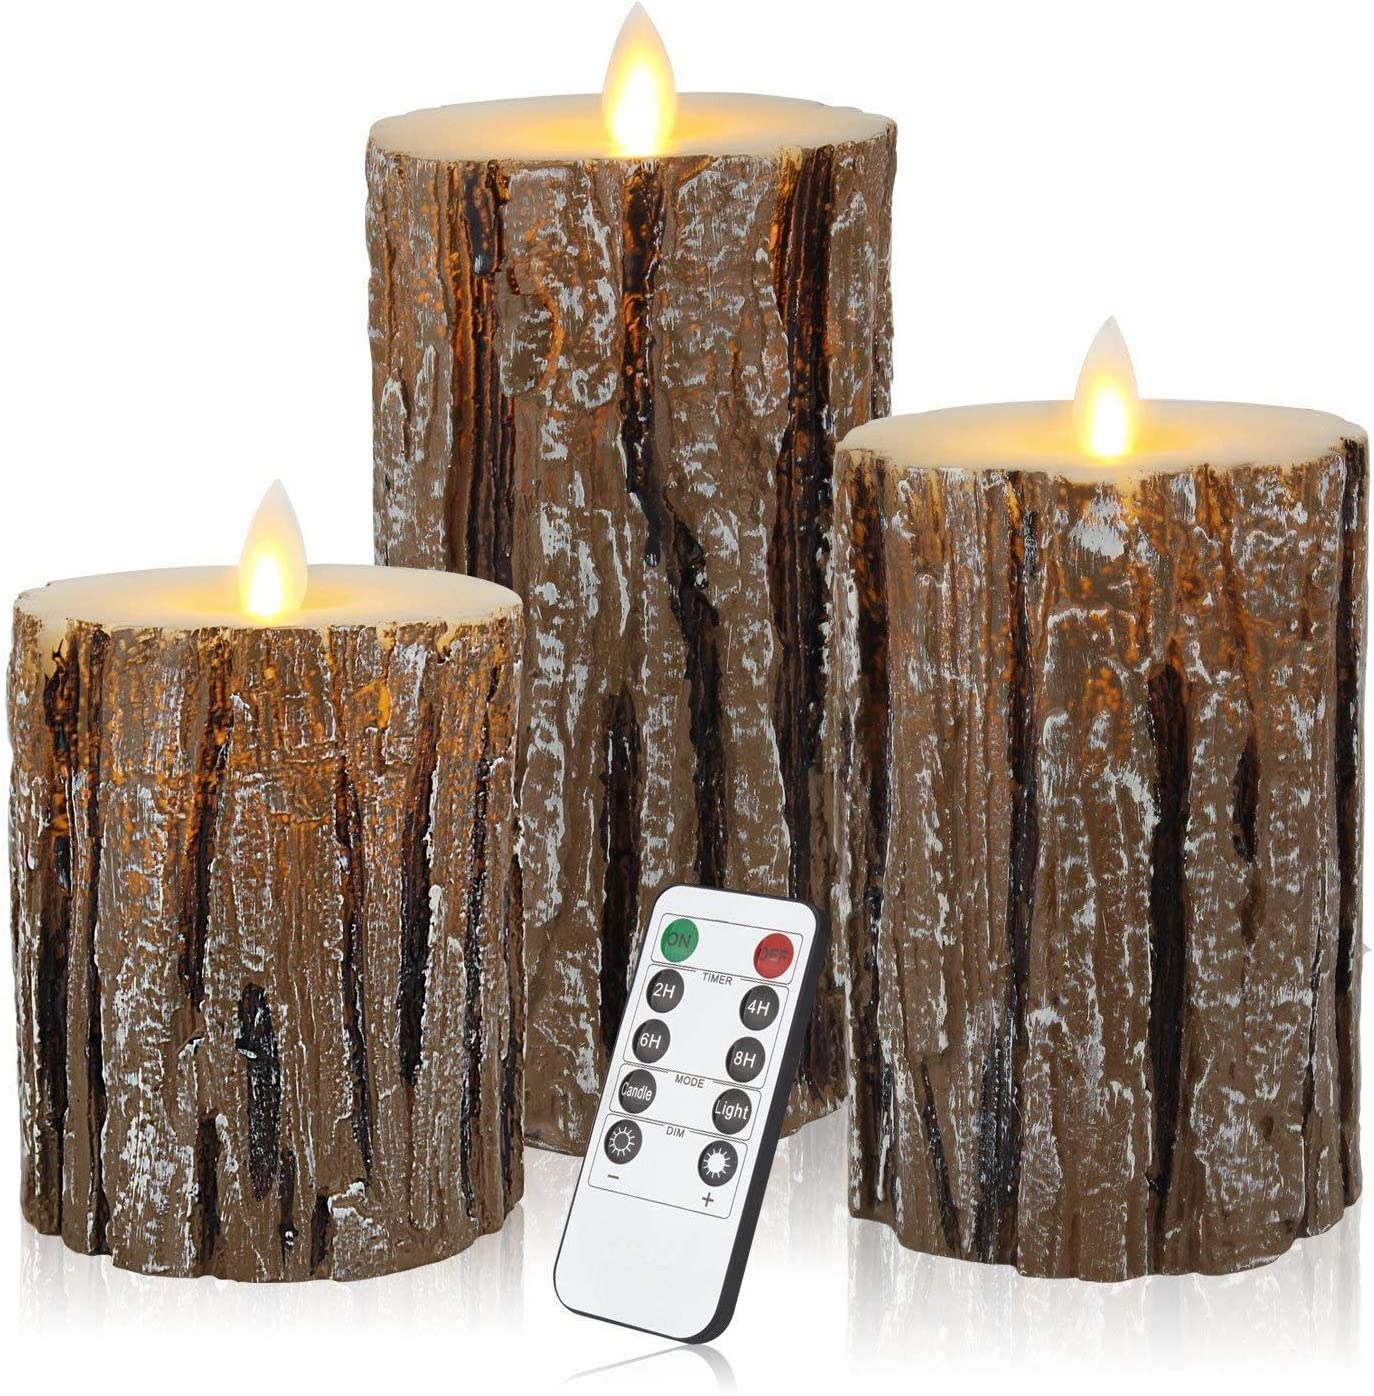 Aku Tonpa Pine Bark Effect Flameless Candles Battery Operated Pillar Real Wax Flickering Electric LED Candle Sets with Remote Control Cycling 24 Hours Timer, 4 5 6 Pack of 3